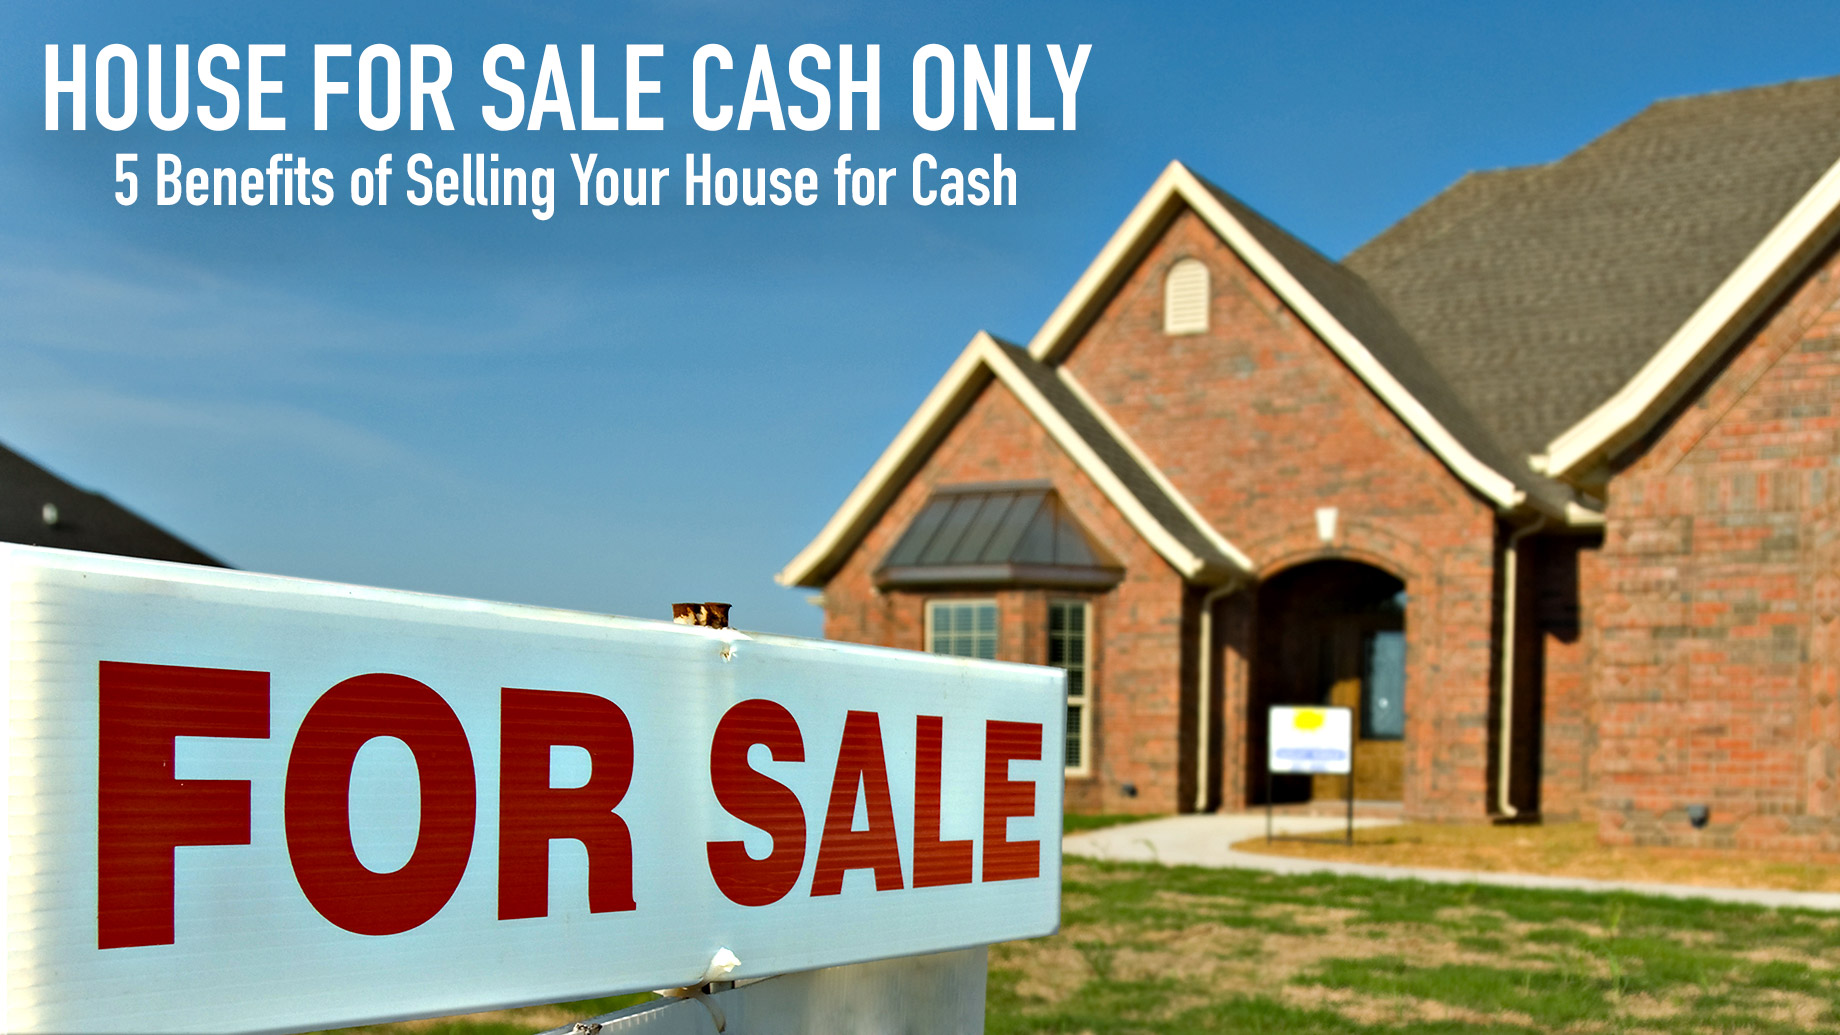 House for Sale Cash Only - 5 Benefits of Selling Your House for Cash